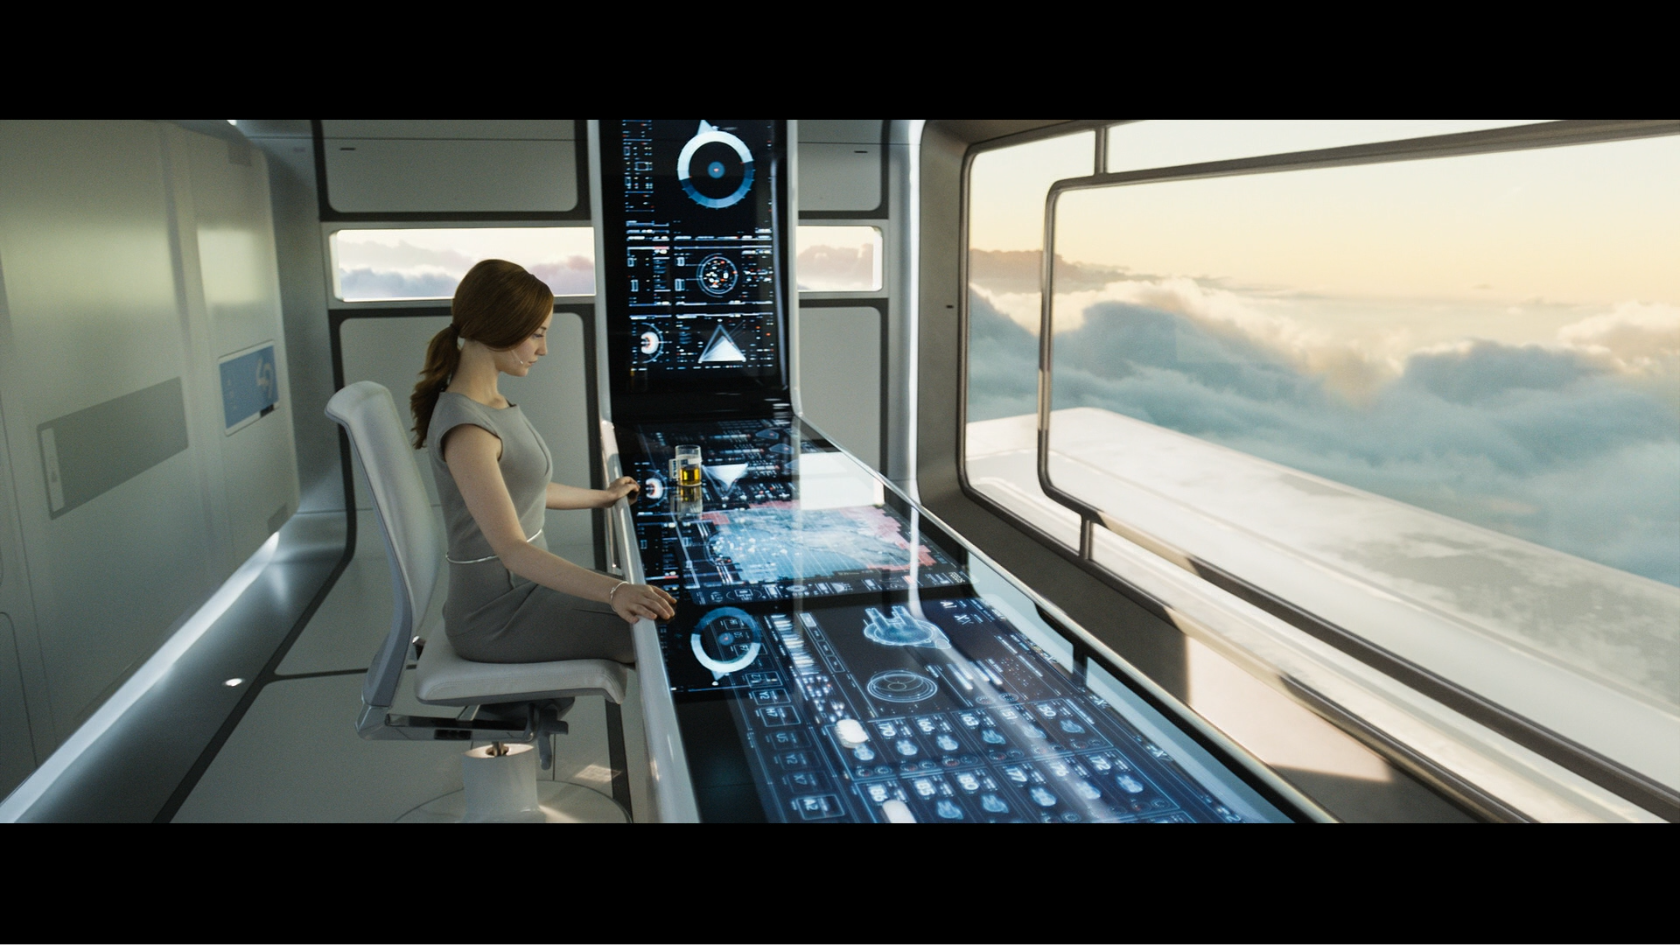 Victoria from the movie Oblivion at main control center. The control center is a touchable interface with lots of infographic data, showing the interface design in Oblivion.